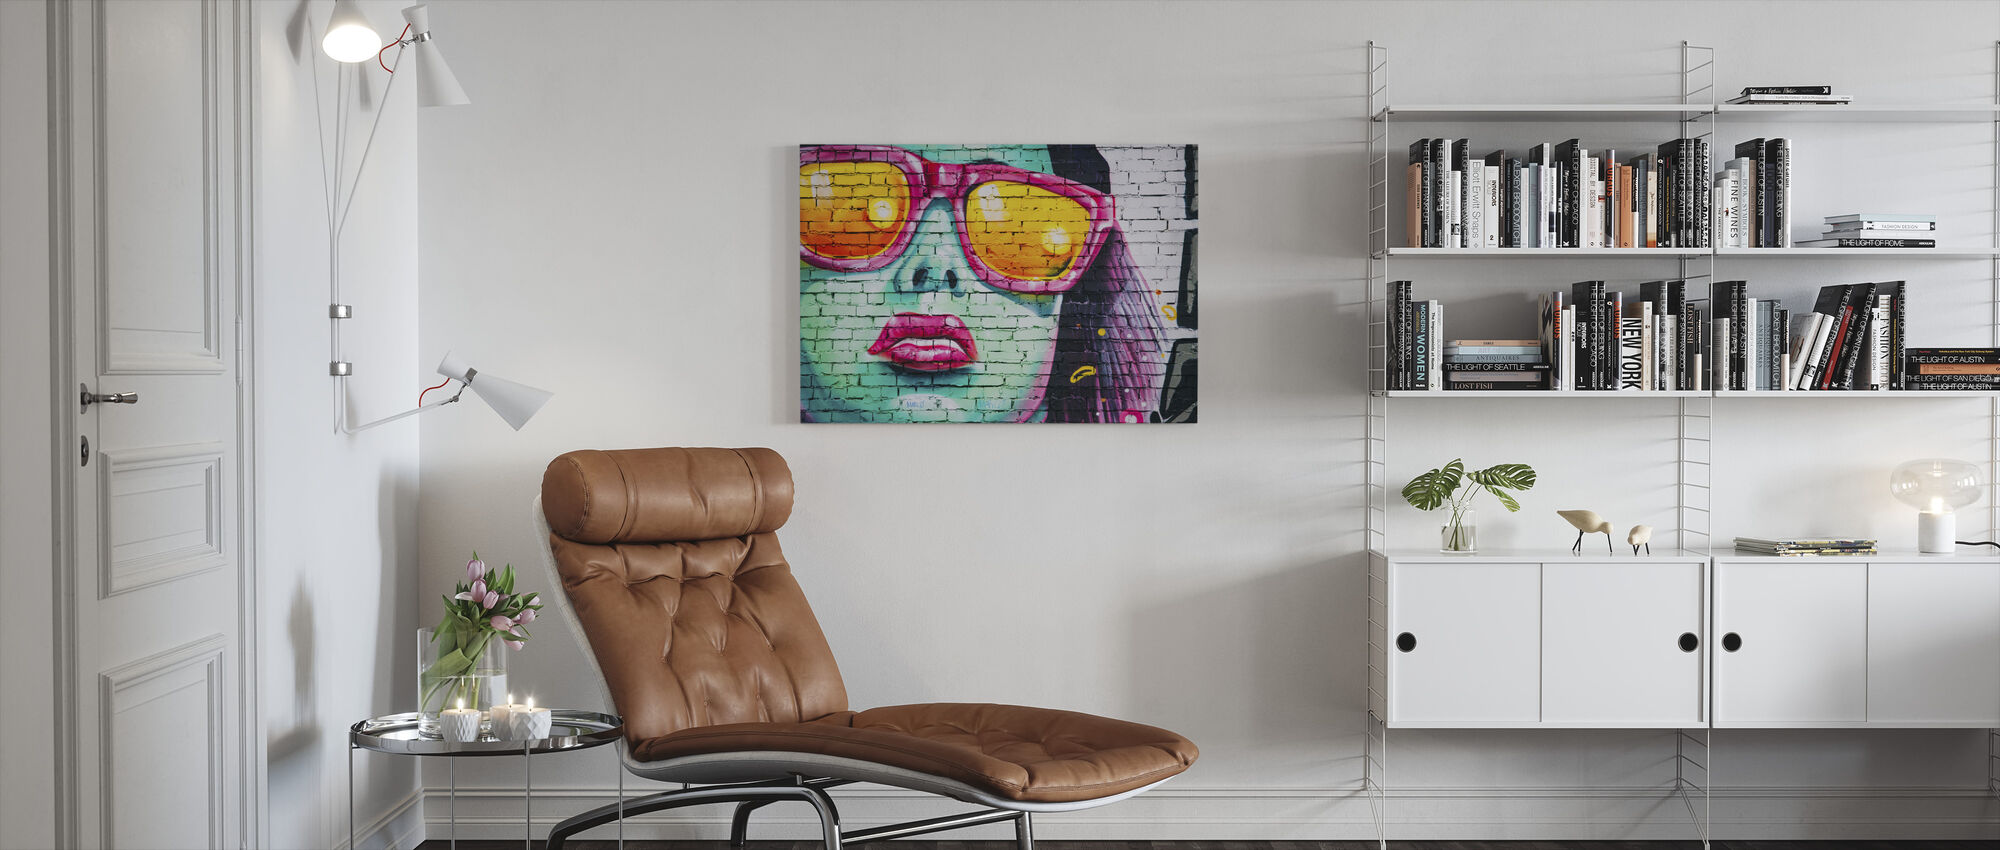 Mural of Woman's Face - Canvas print - Living Room